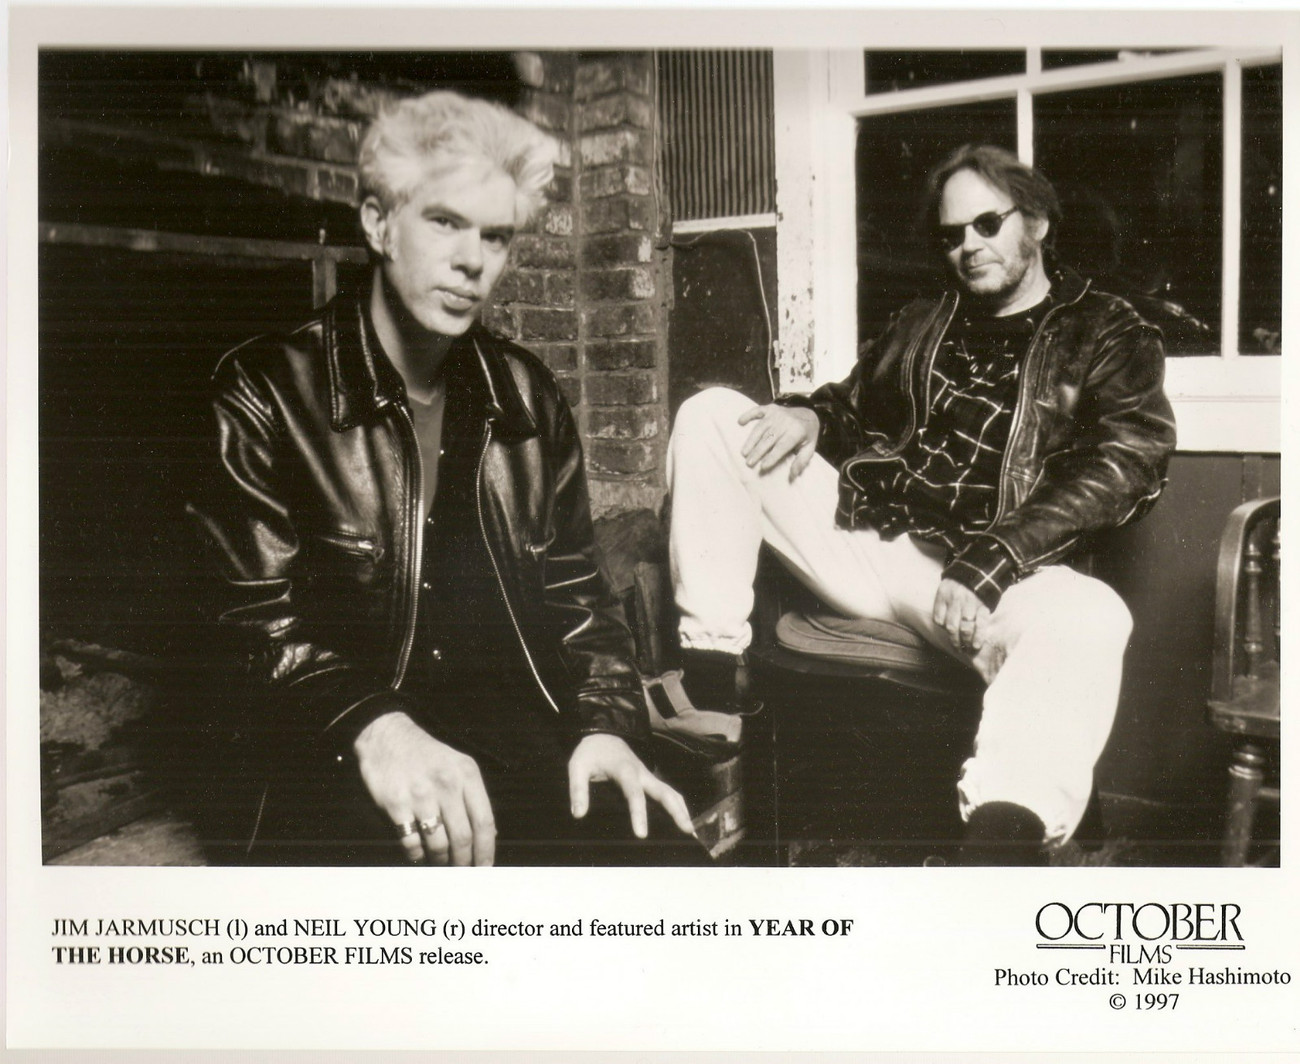 Neil Young Jim Jarmusch press photo 1997